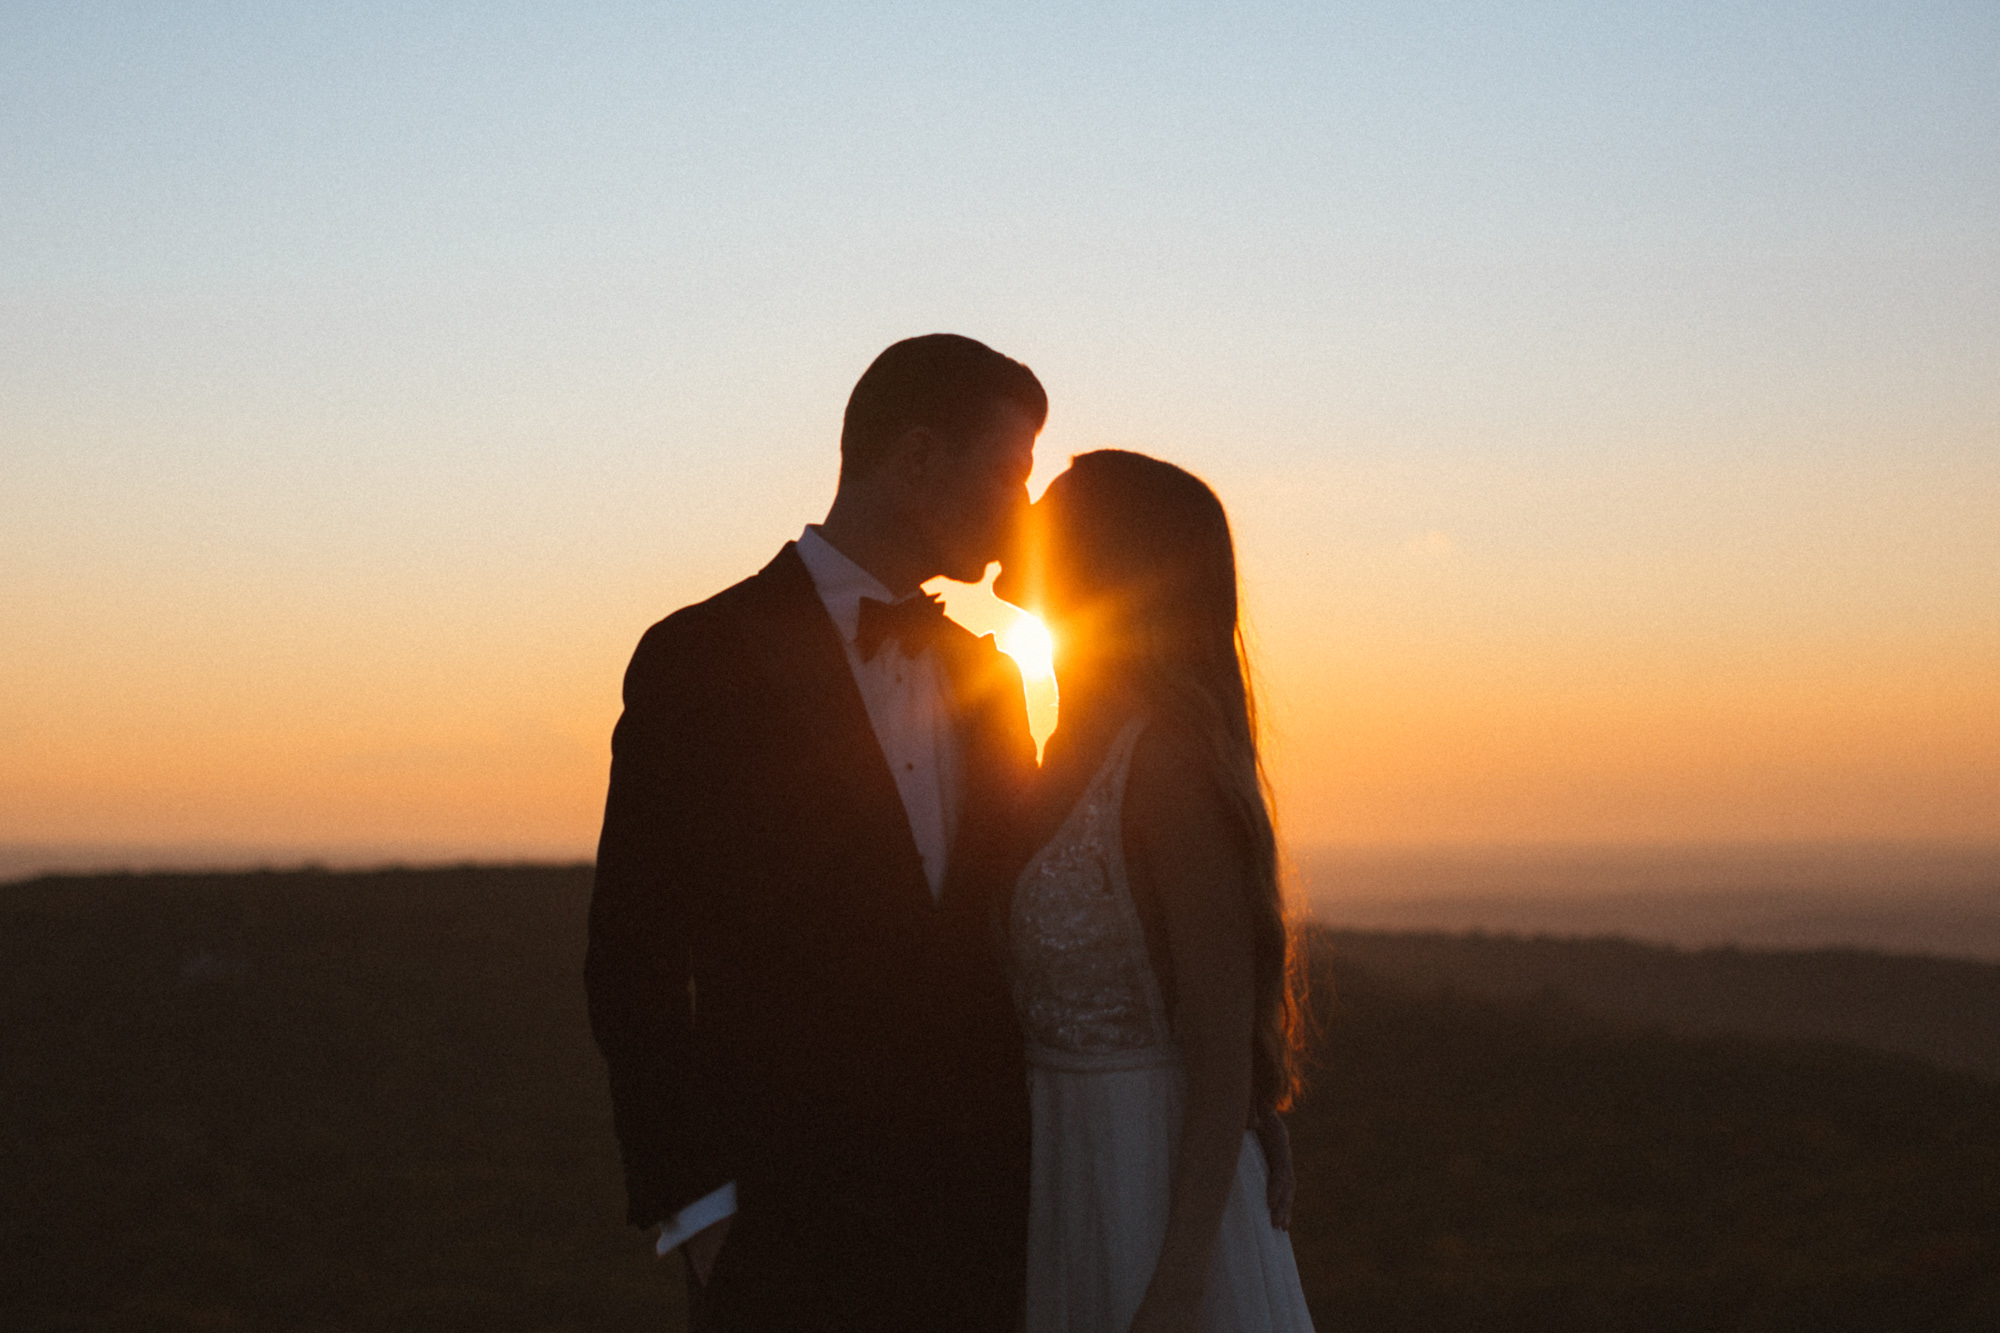 Brooklyn NYC wedding photographer Boris Zaretsky minnewaska state park sam's point hudson valley wedding_B2C2711 copy.jpg